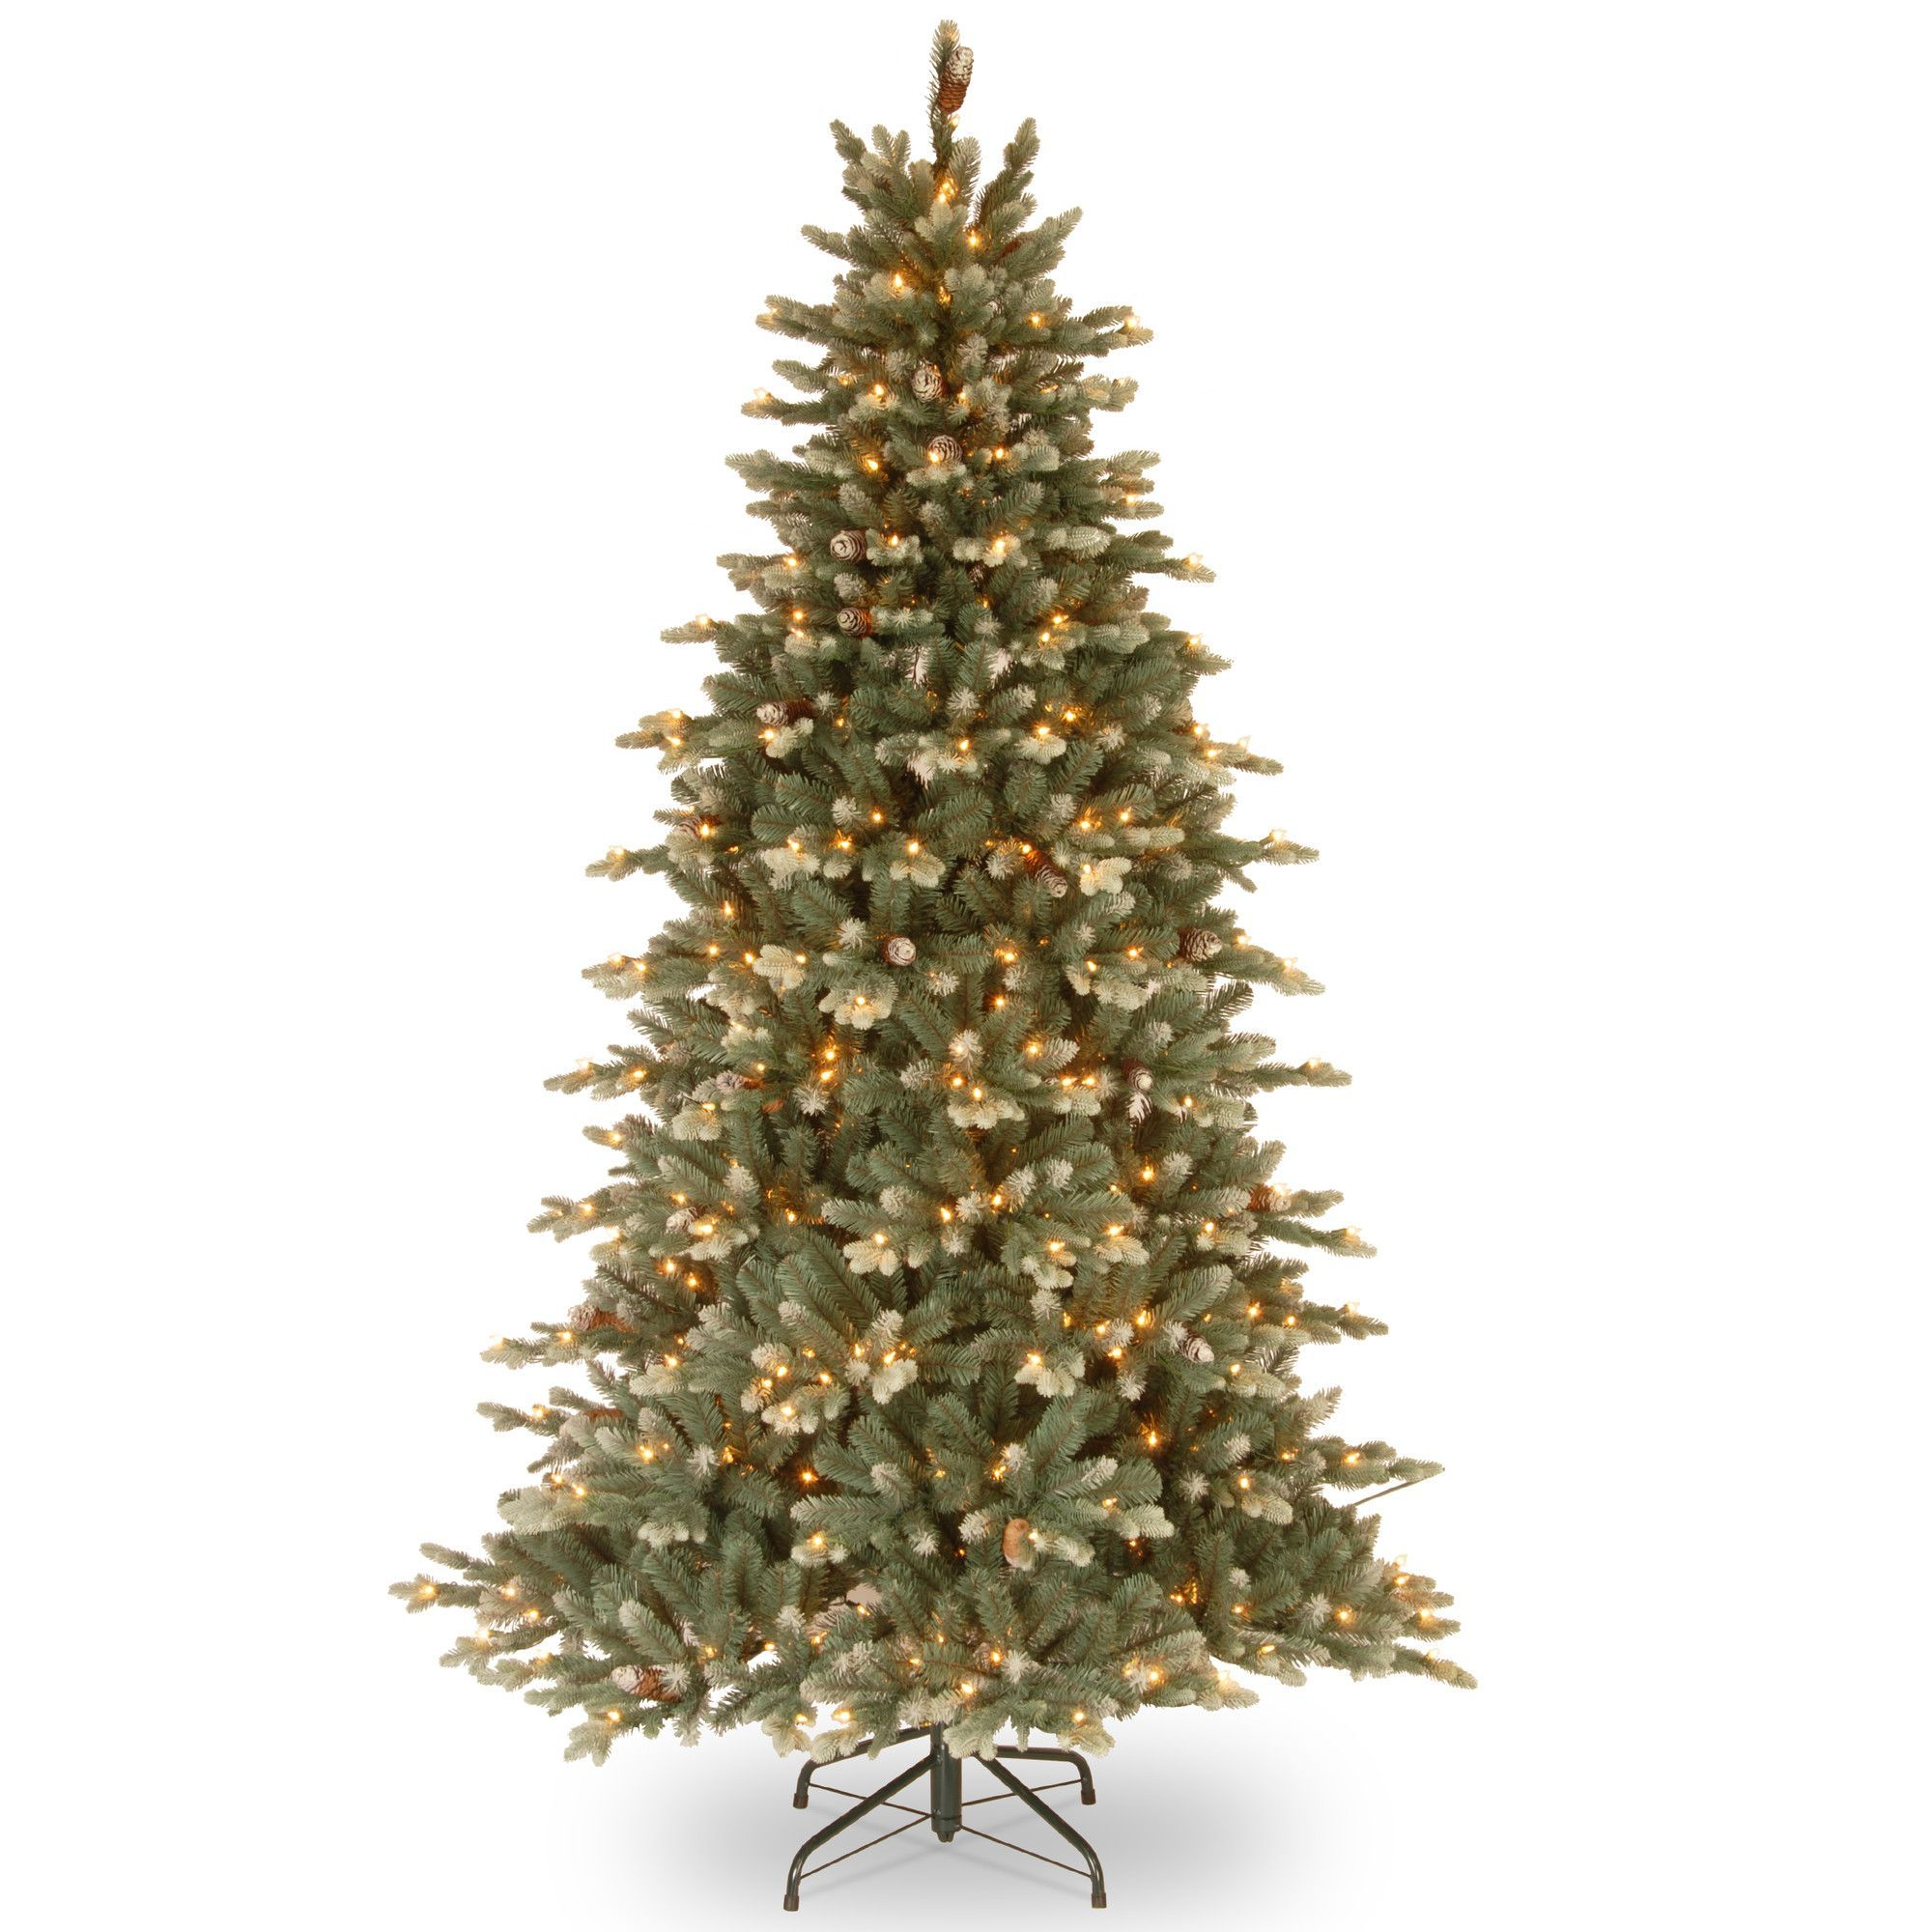 Copenhagen 7 5 Spruce Artificial Christmas Tree with 600 Clear